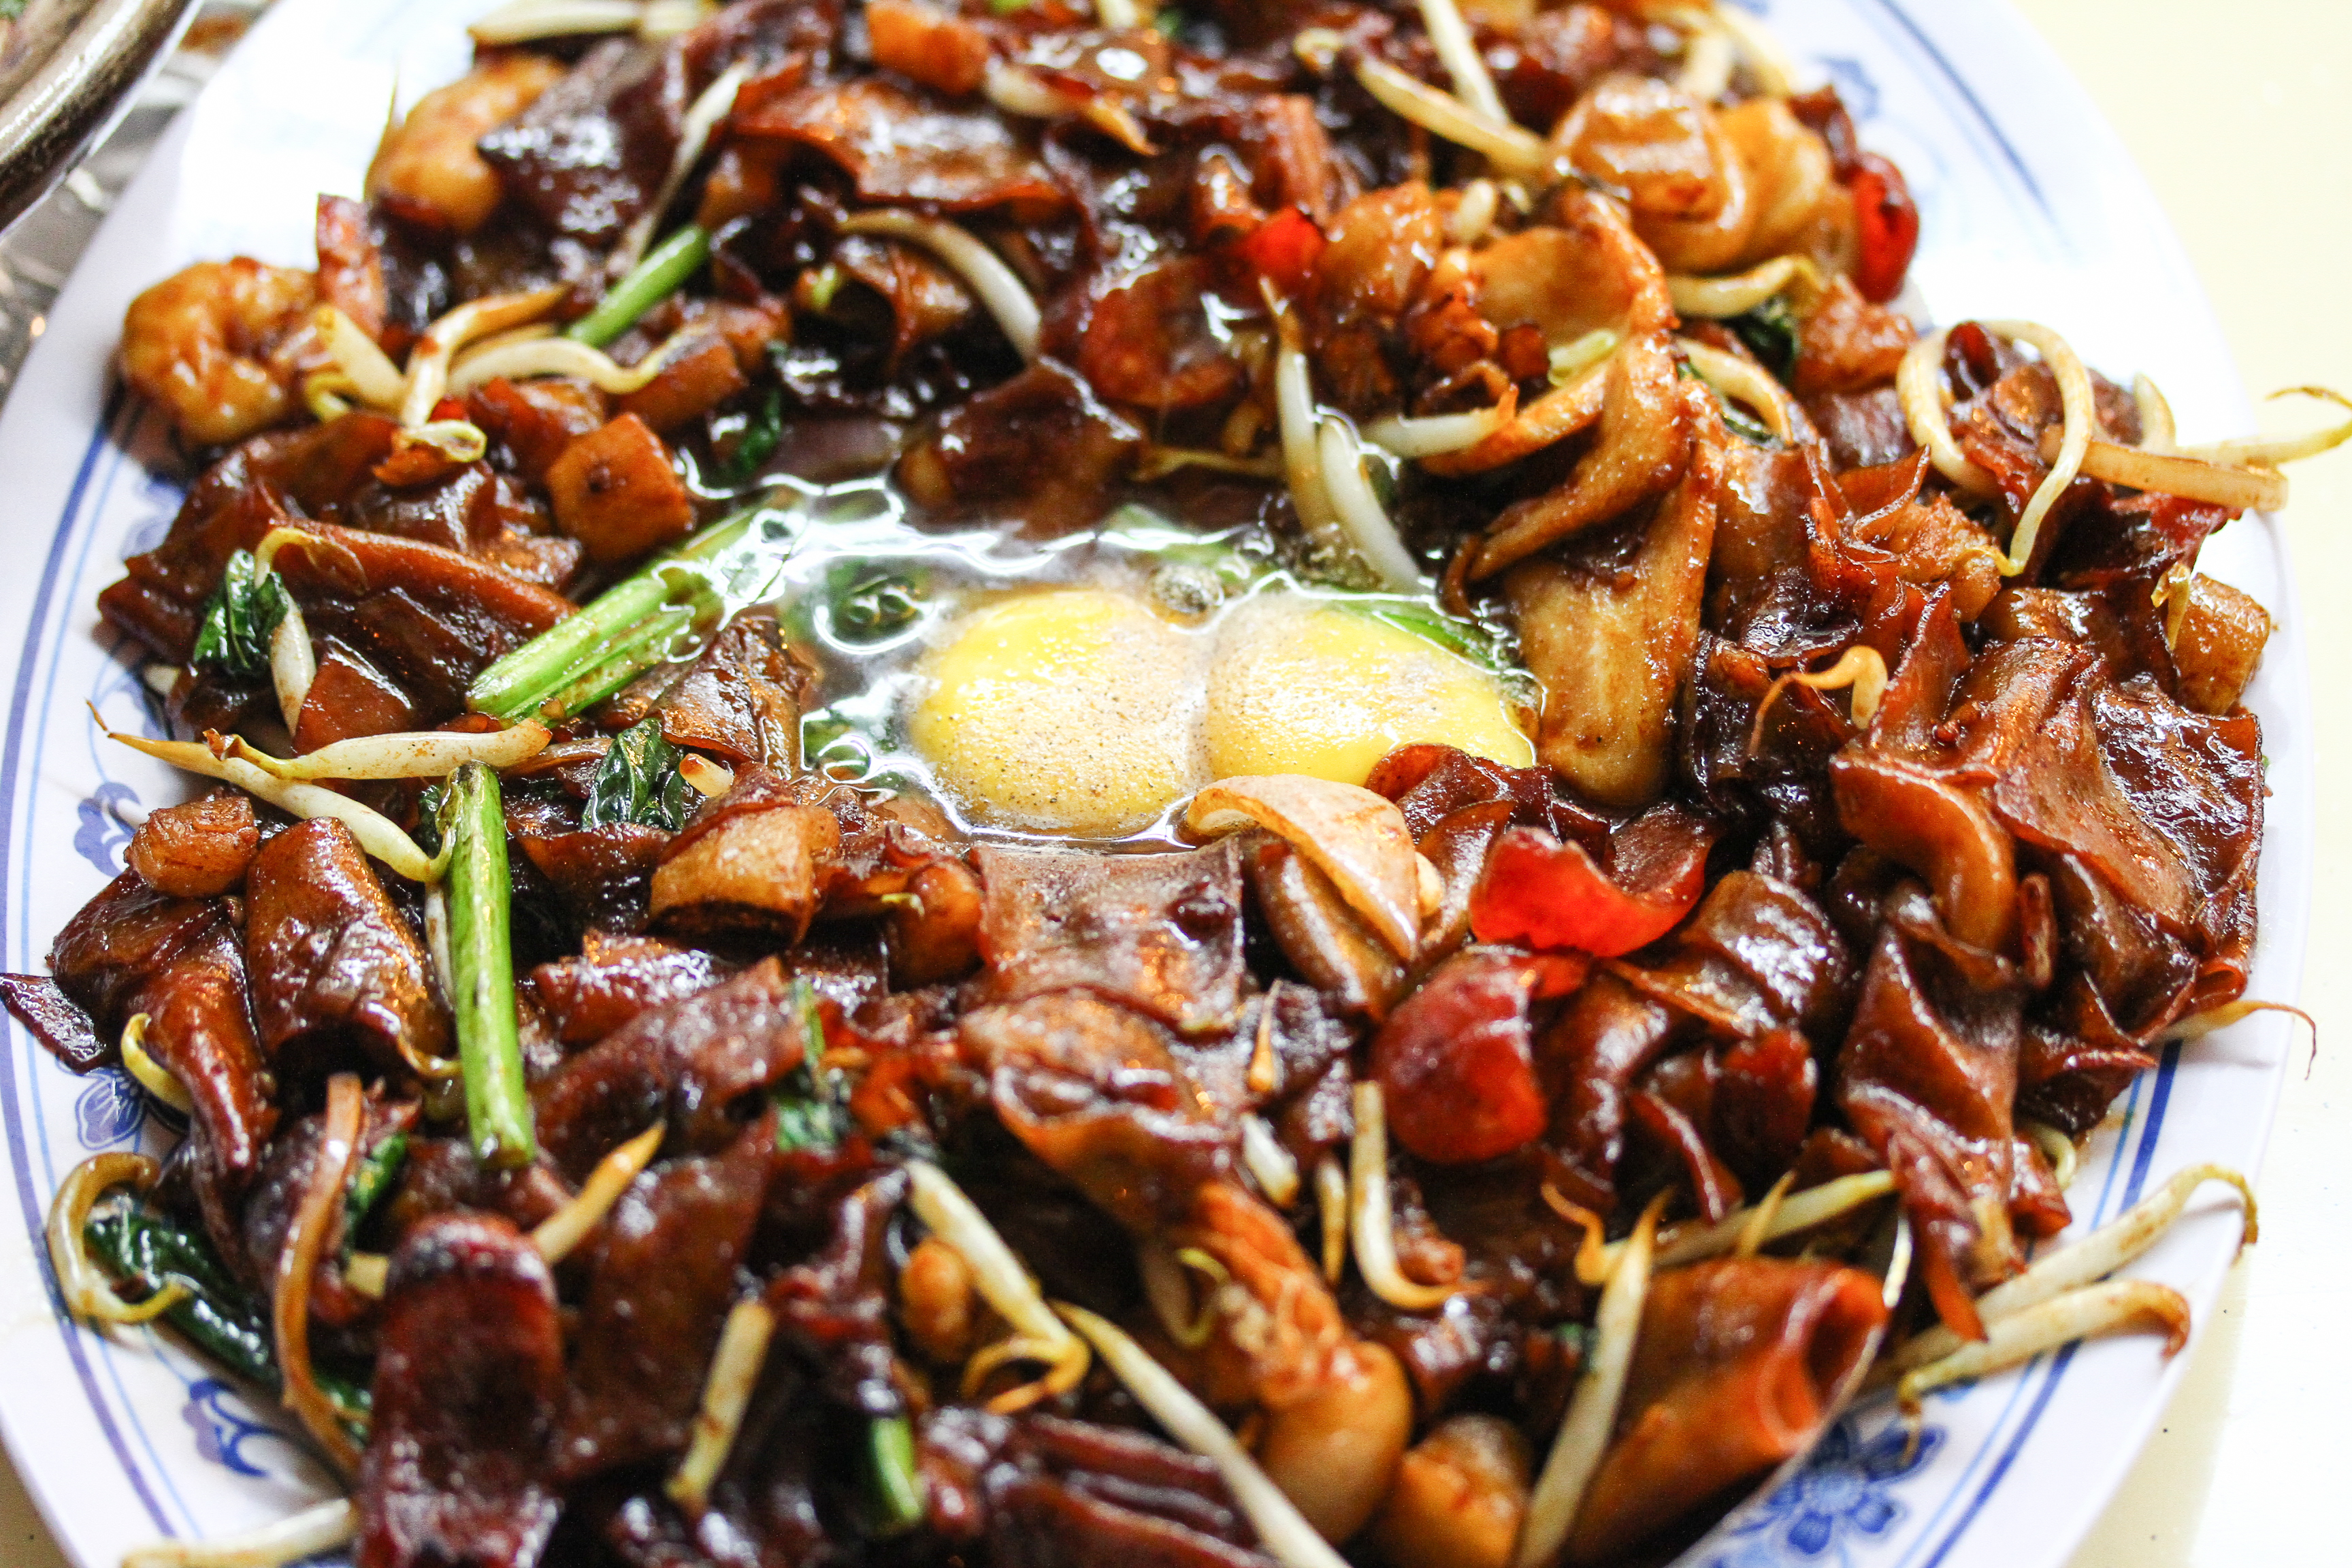 Cheap Places to Eat in Singapore: Keng Eng Kee Seafood